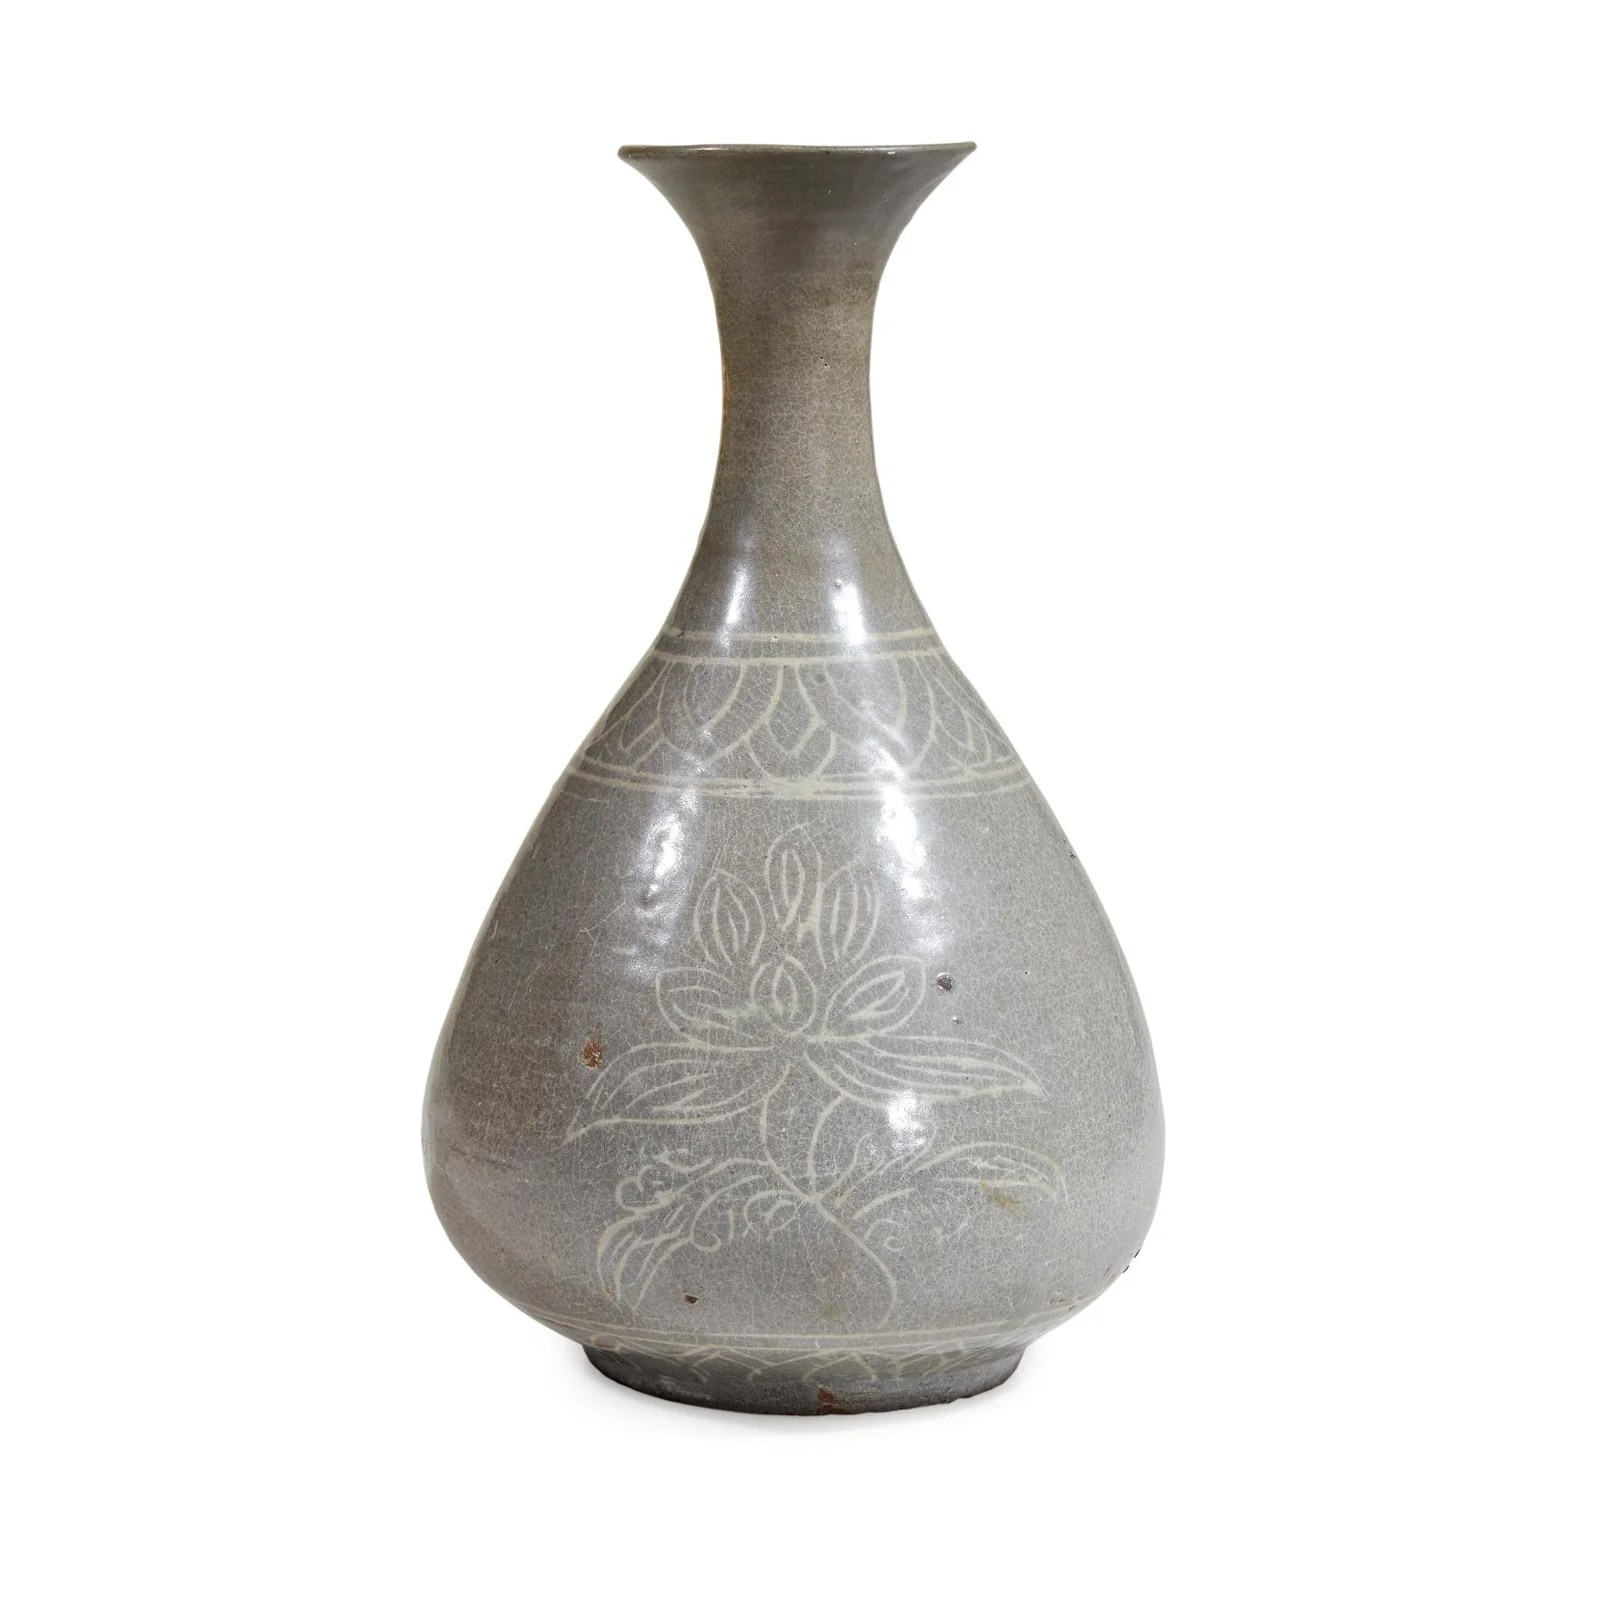 A Korean inlaid celadon pear-shaped vase, Early Goryeo